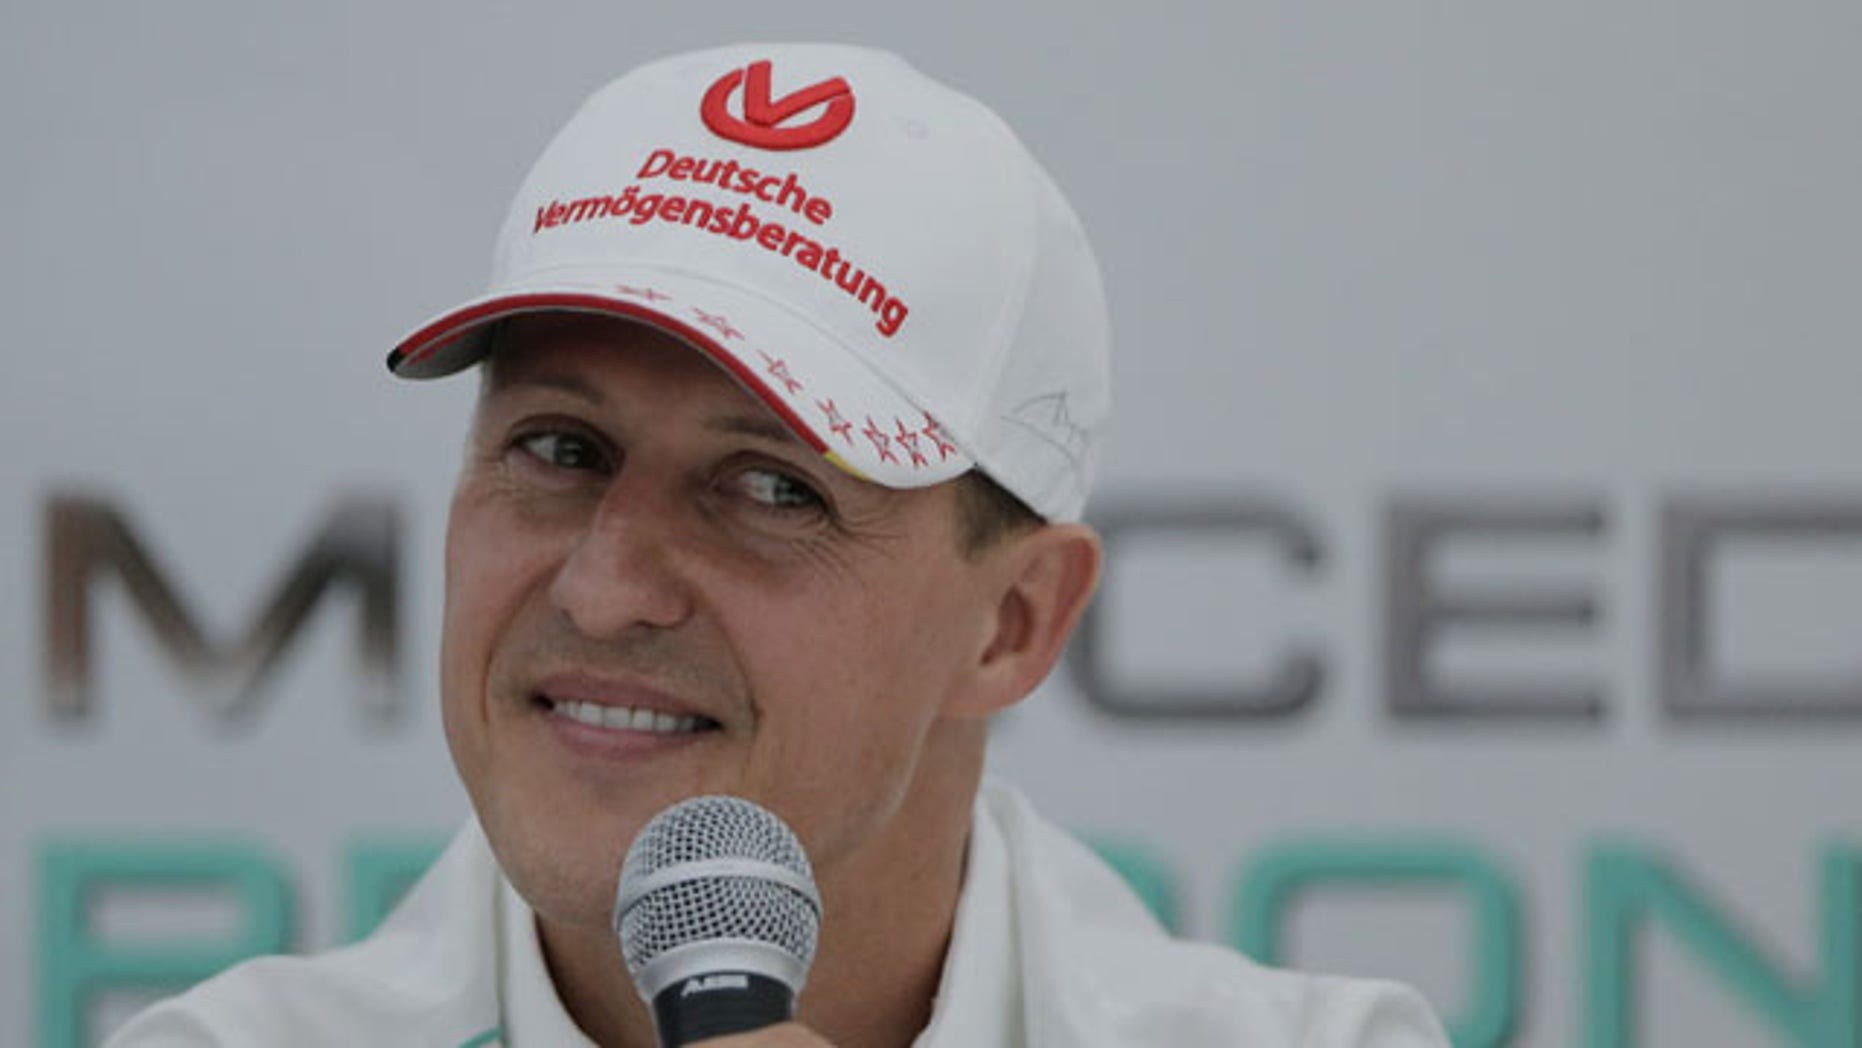 File - Michael Schumacher announces his retirement from Formula One at the end of the 2012 season during a press conference at the Suzuka Circuit venue for the Japanese Formula One Grand Prix in Suzuka, Japan. (AP Photo)